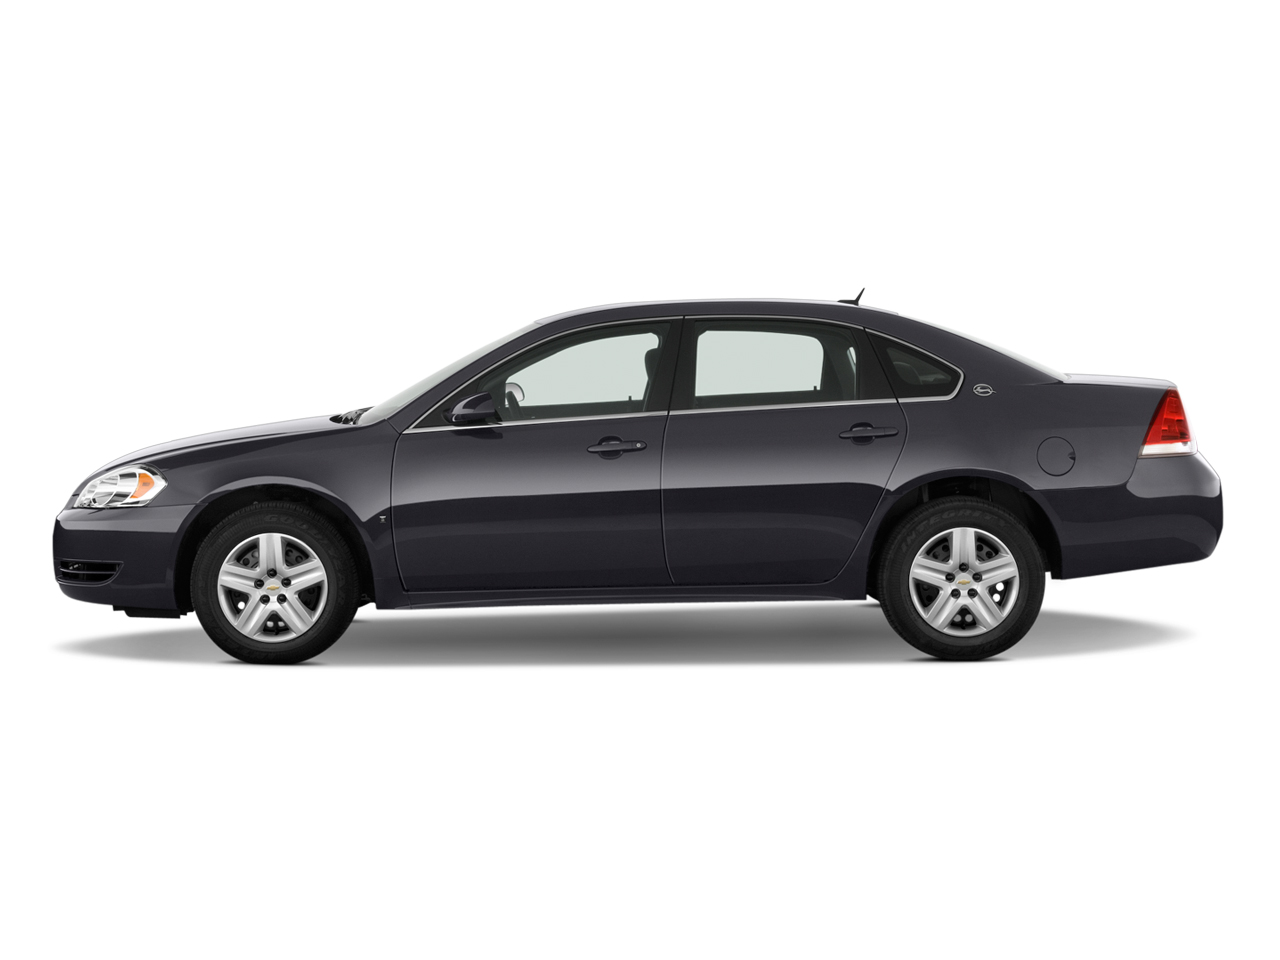 2011 Chevrolet Impala Prices And Expert Review The Car Connection